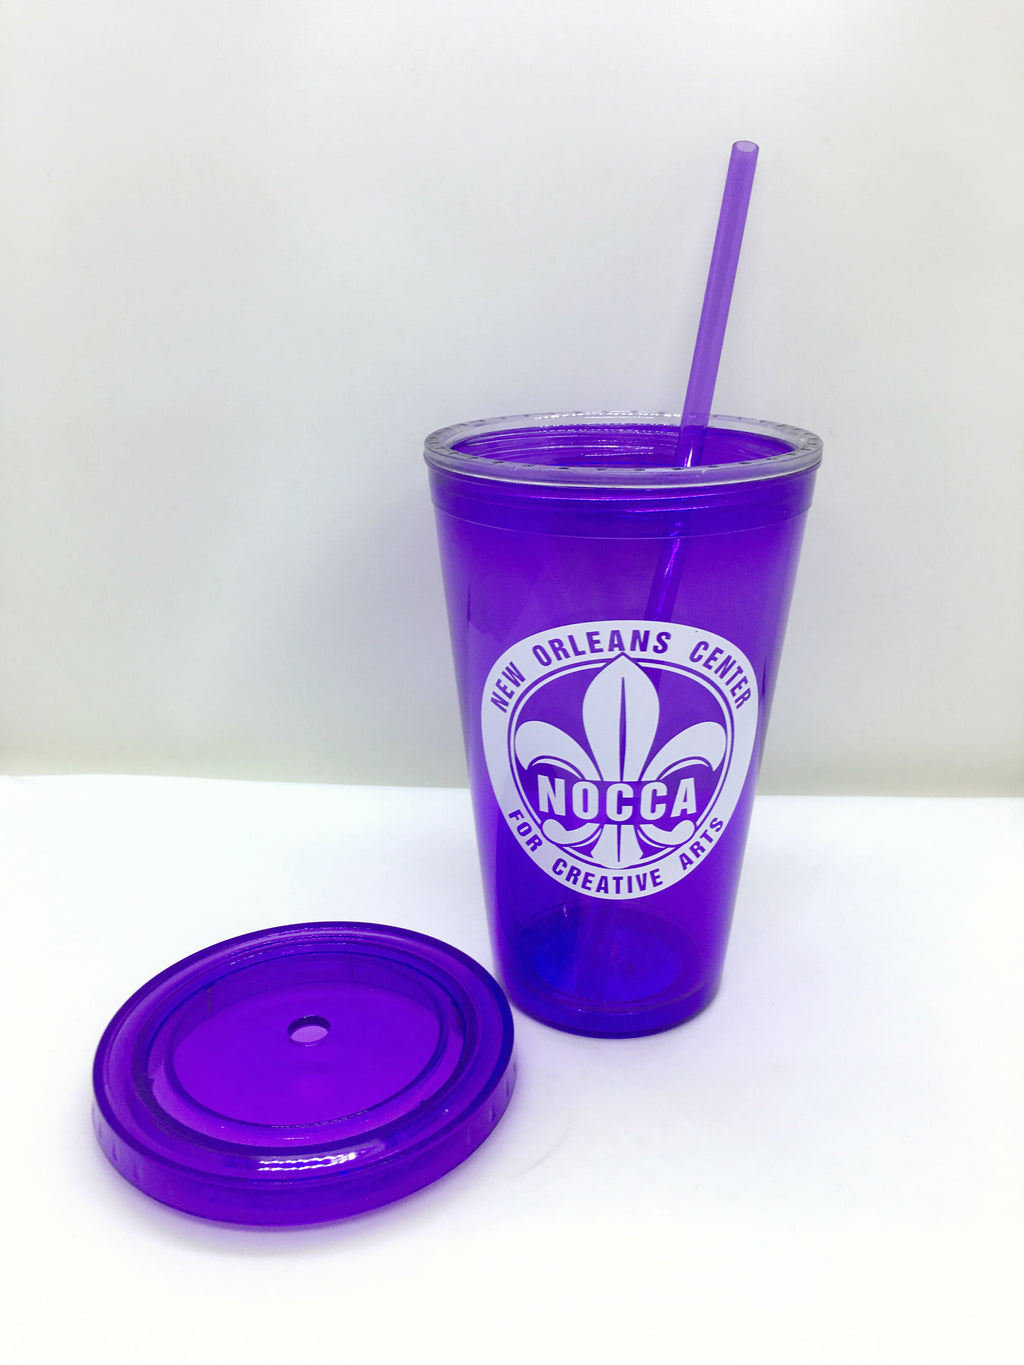 16 oz. hot and cold acrylic tumbler